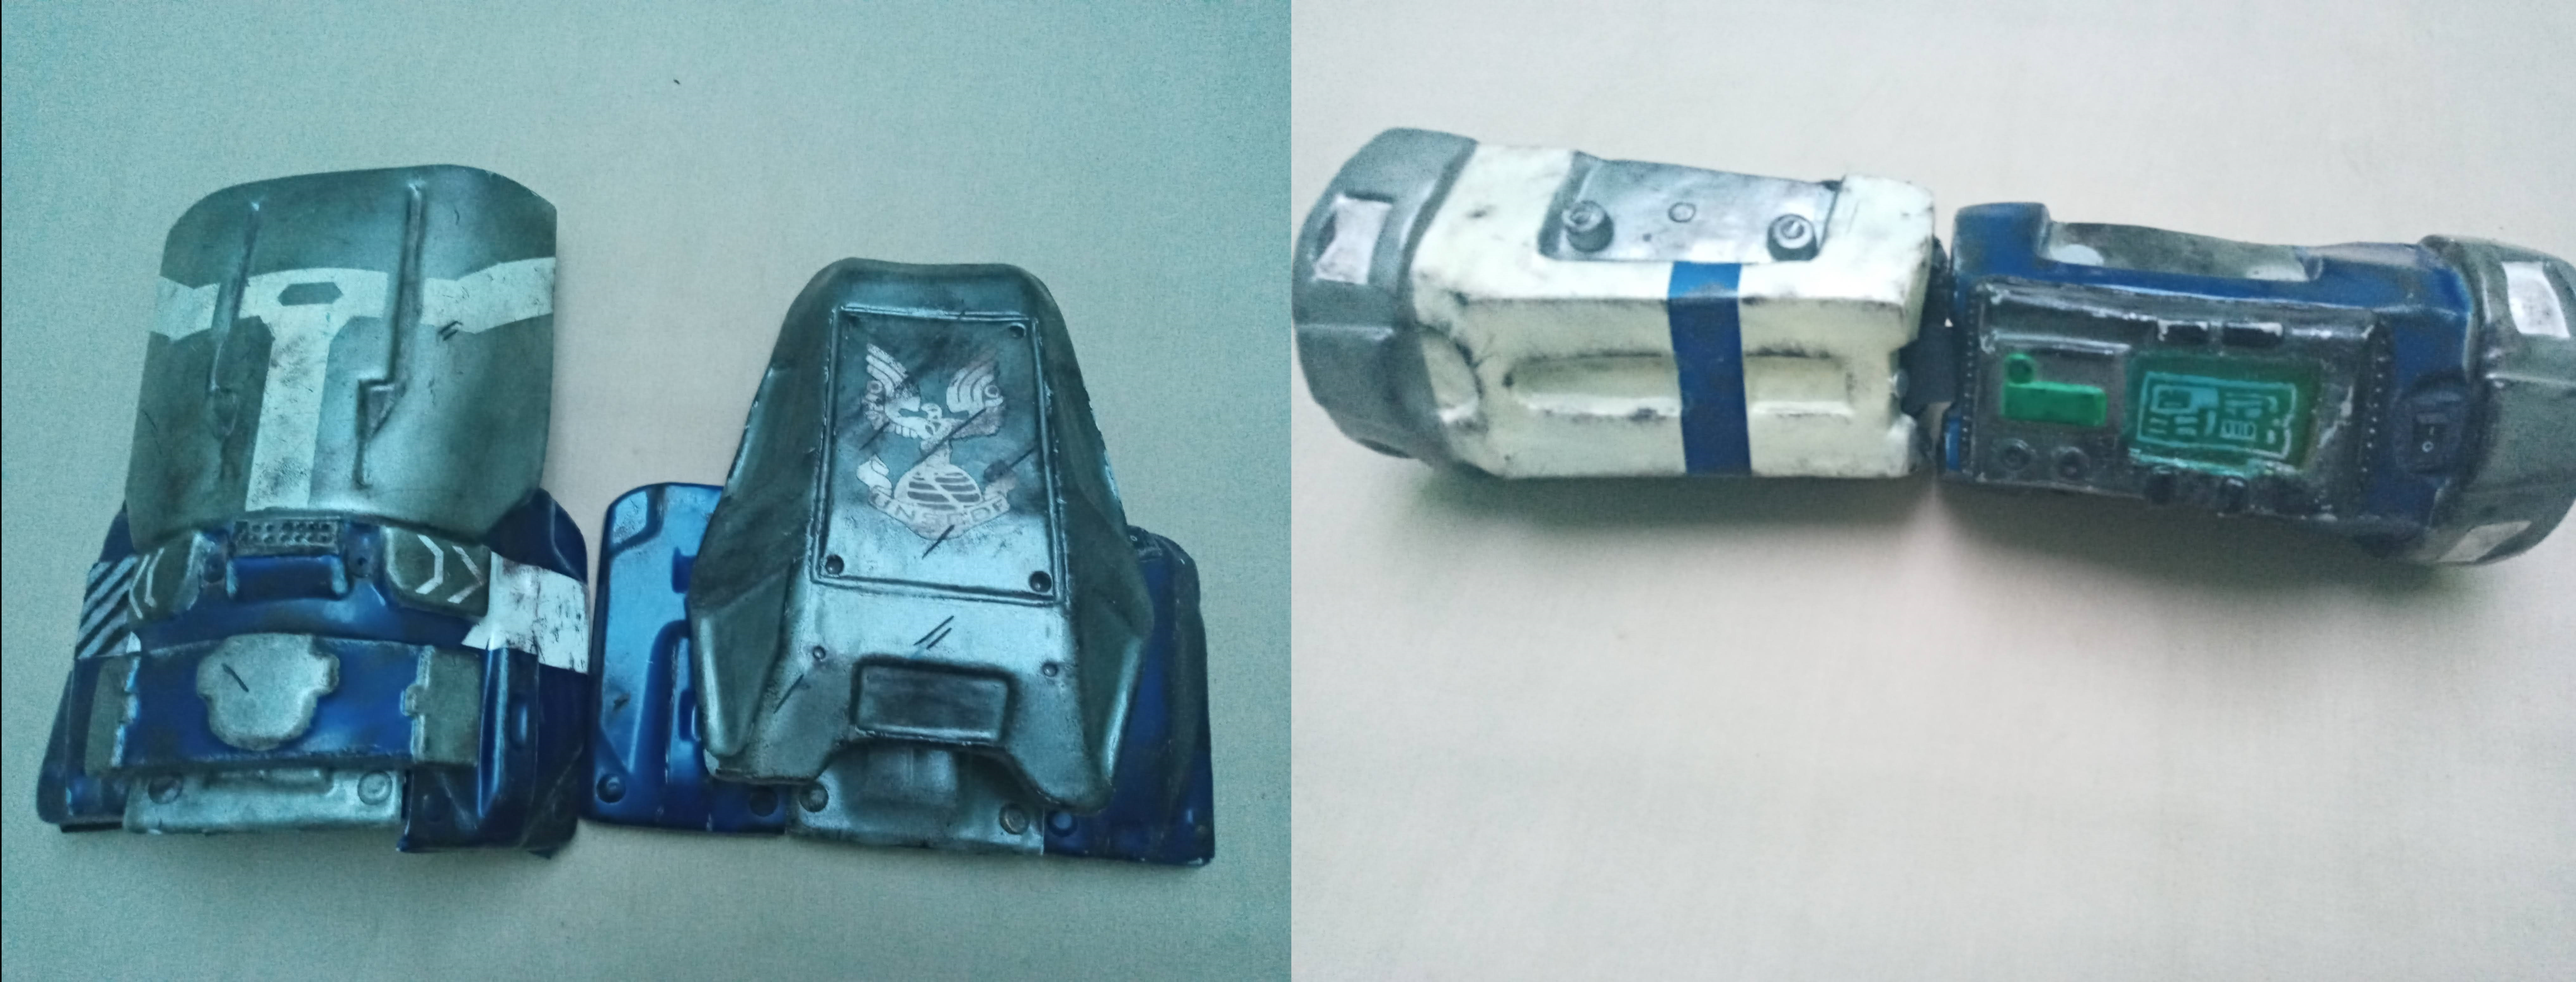 Parts of powered armor